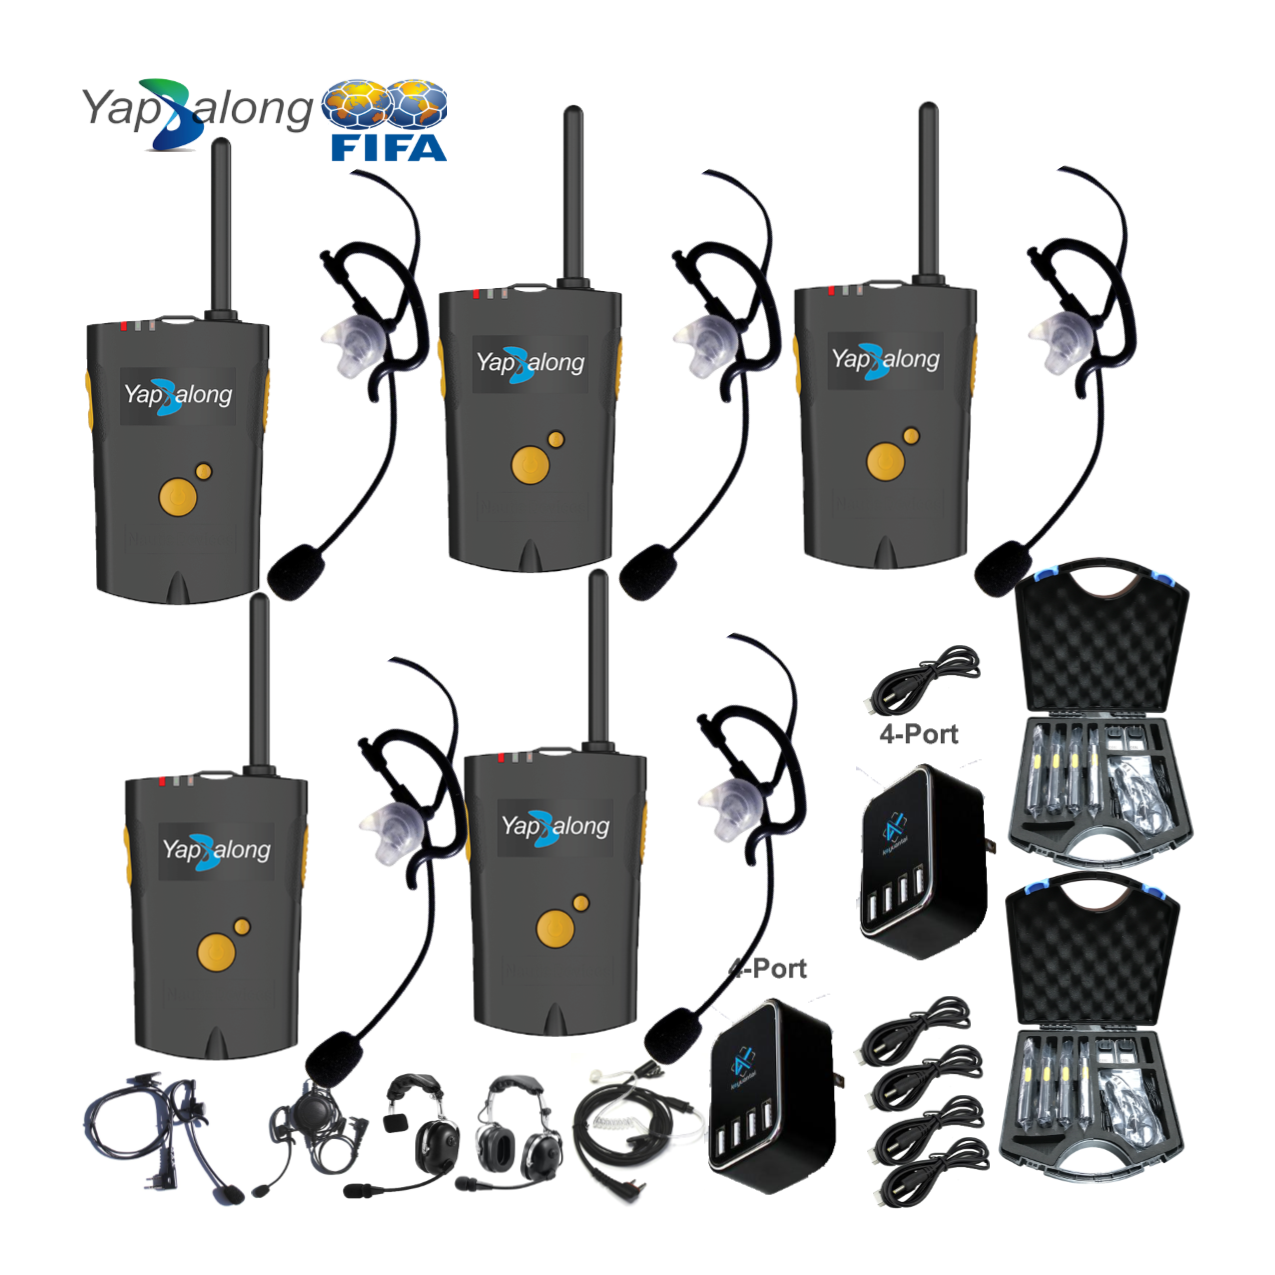 Yapalong 4000 (5-User) Complete Set Intercom Systems Intercom Systems